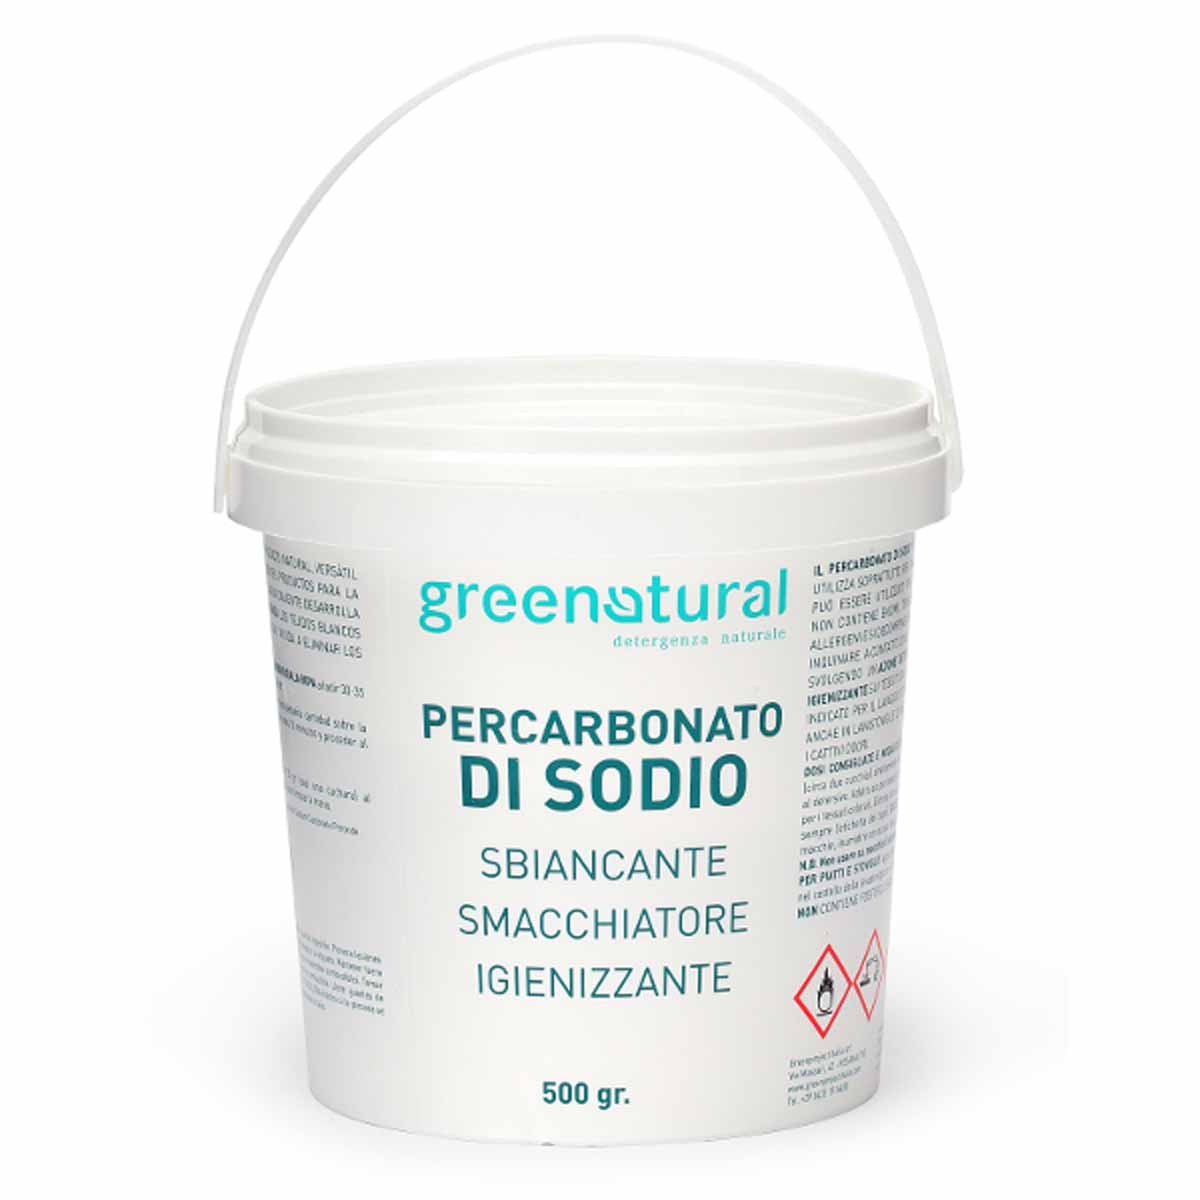 Greenatural – Percarbonato di Sodio 500g